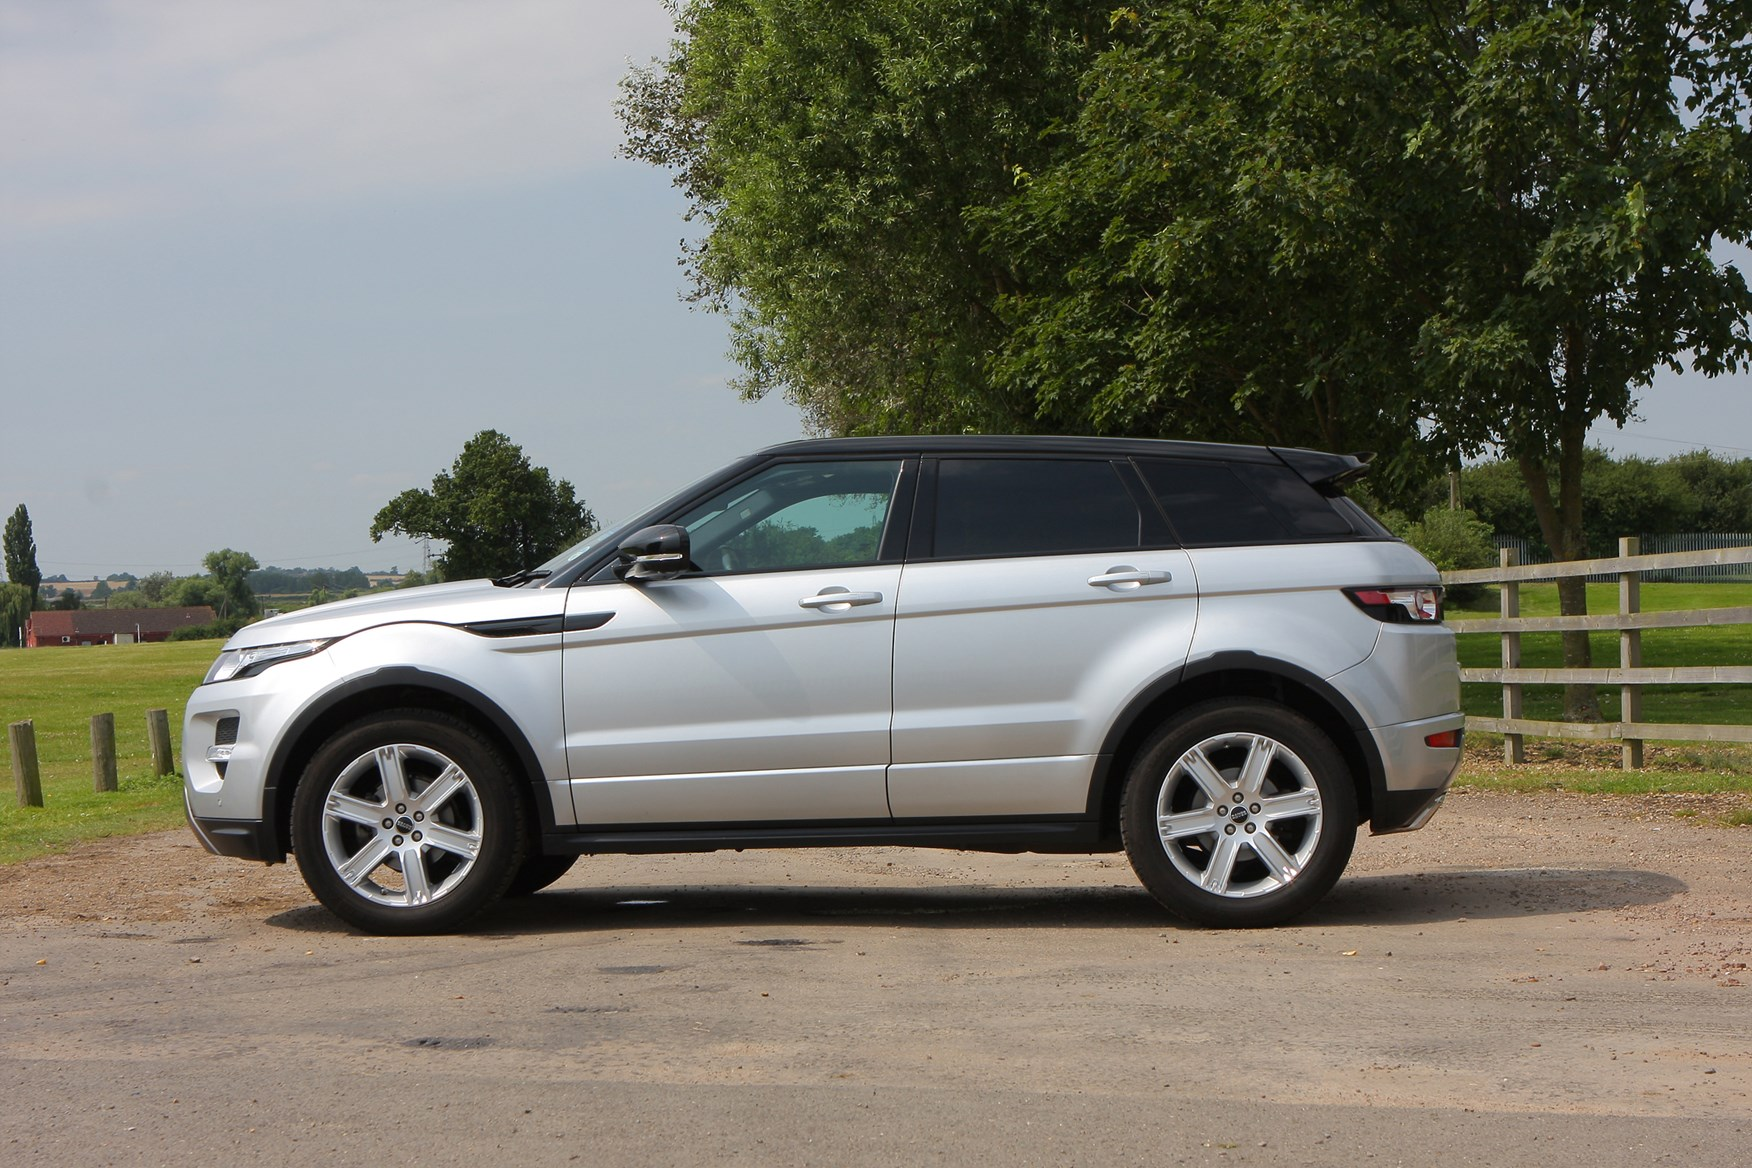 land rover range rover evoque review parkers. Black Bedroom Furniture Sets. Home Design Ideas